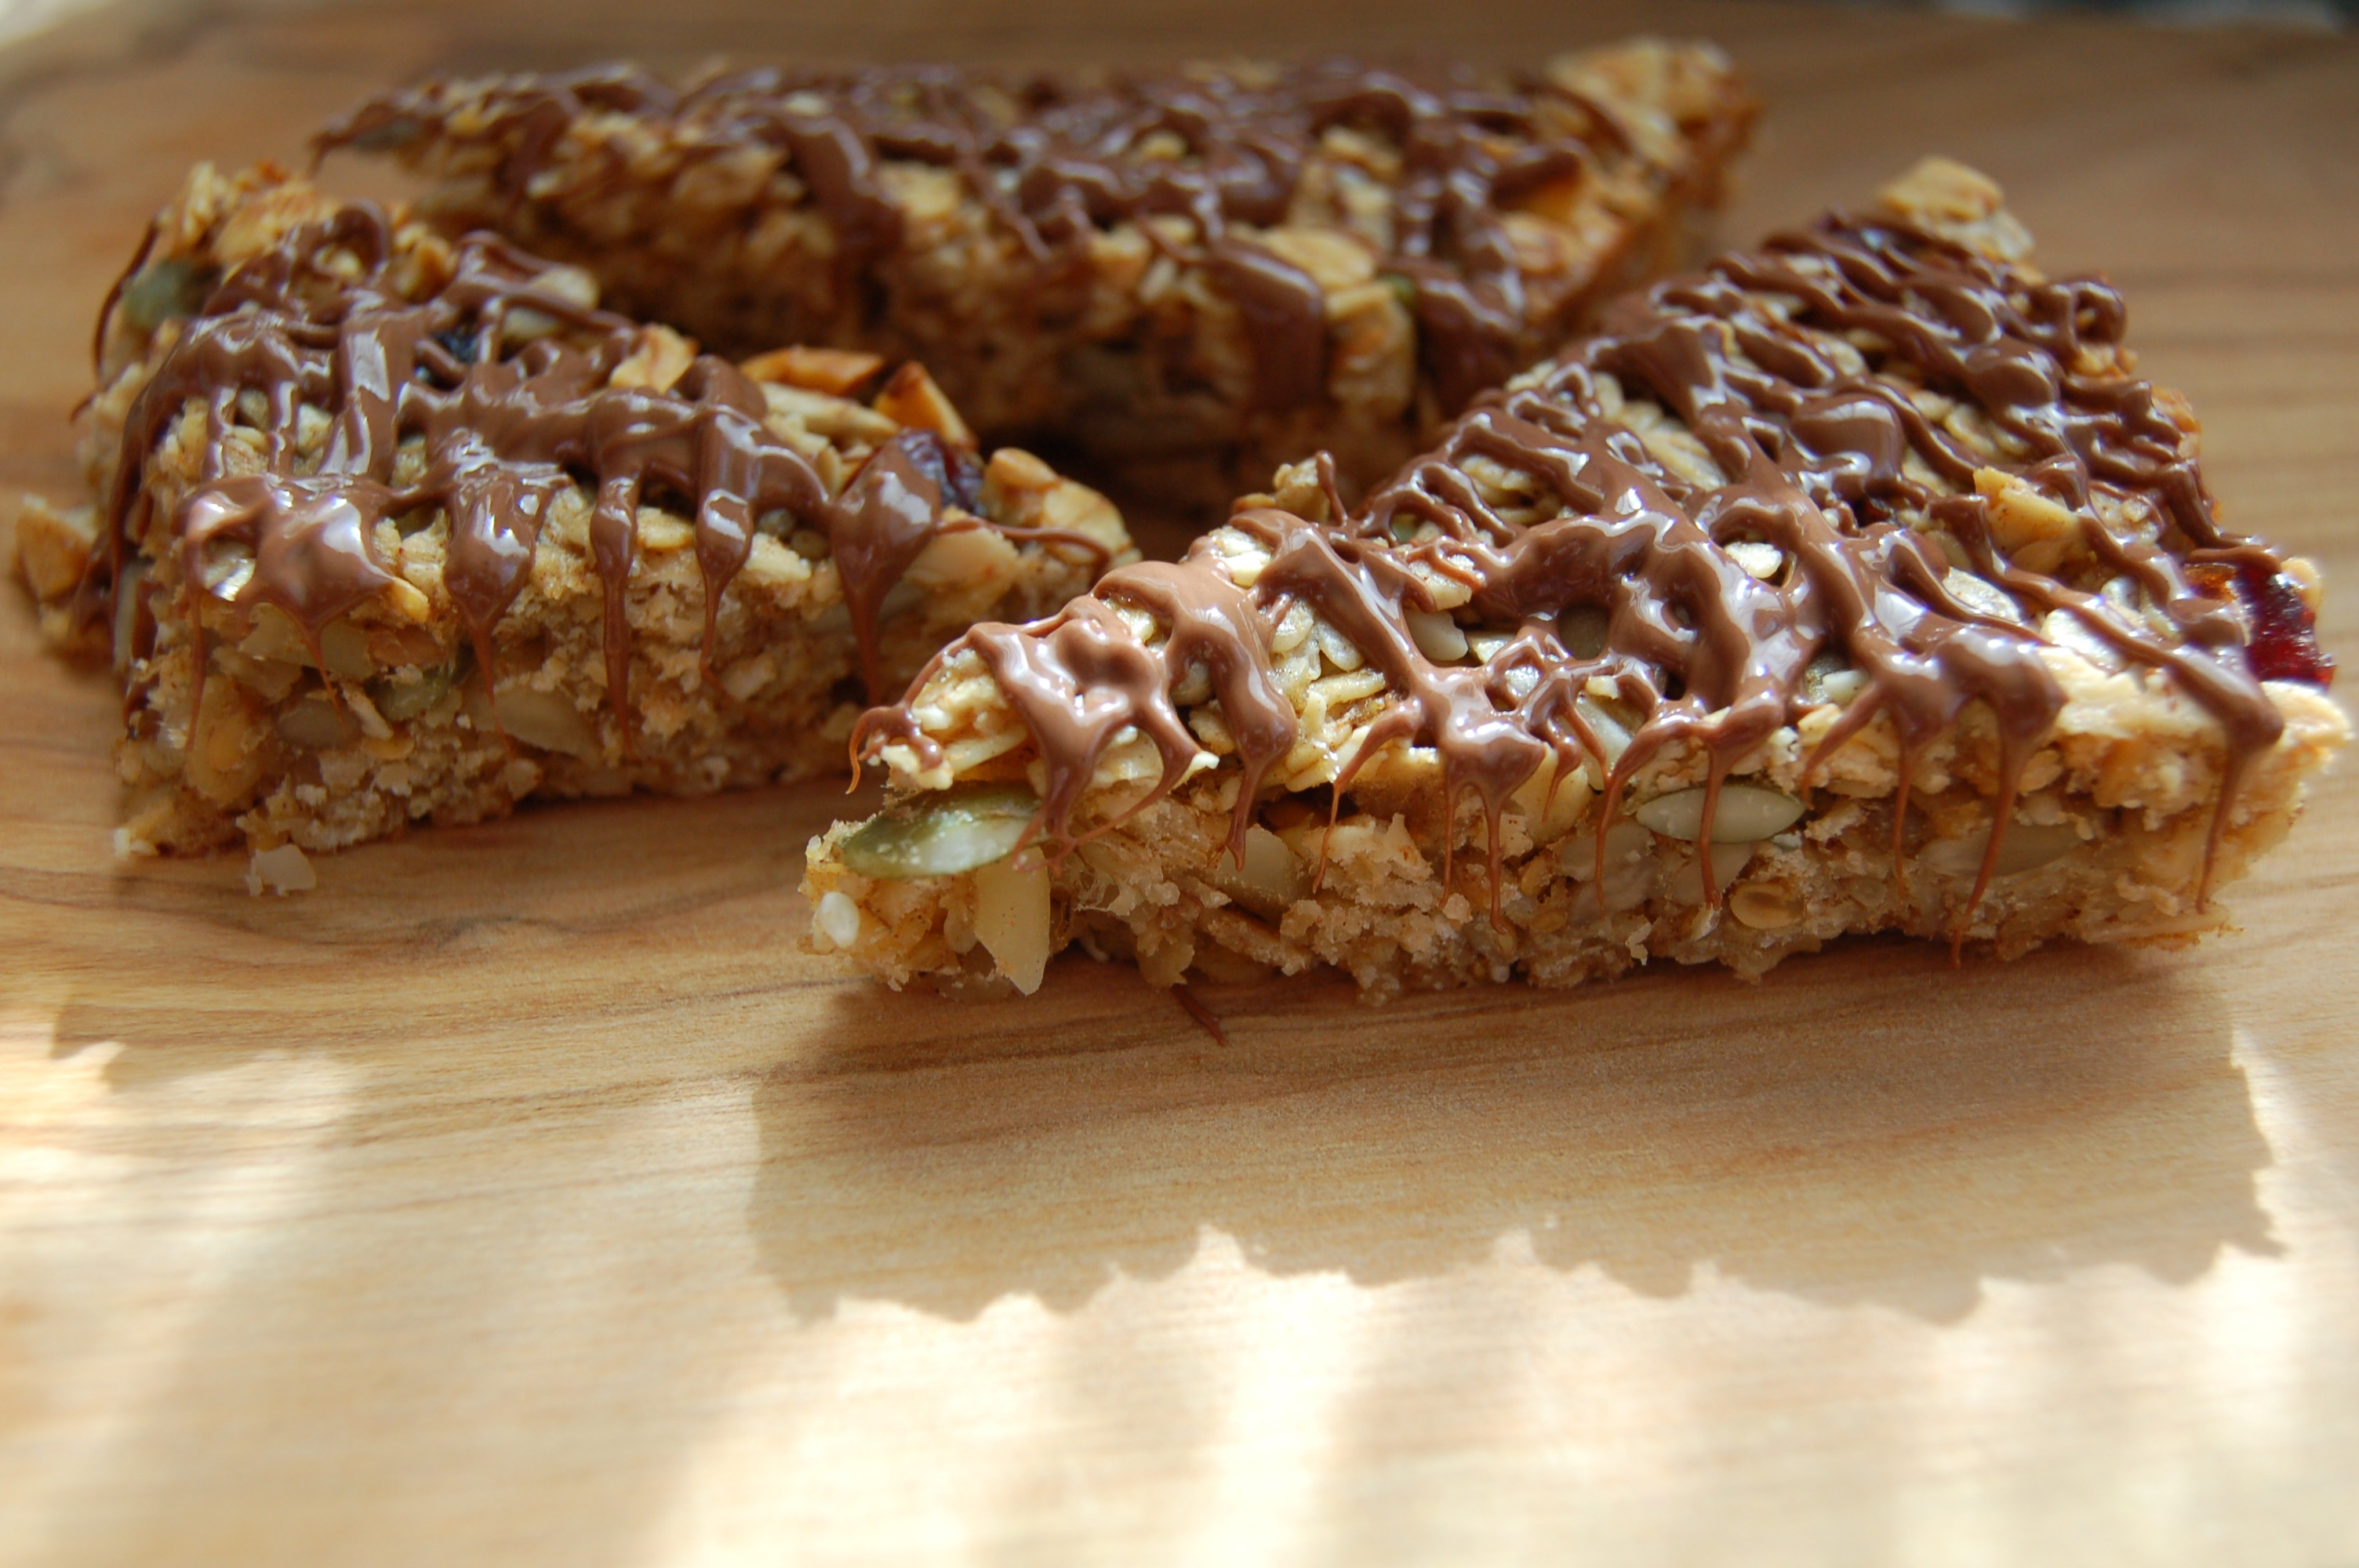 Healthy Banana, Oat And Chocolate Bars